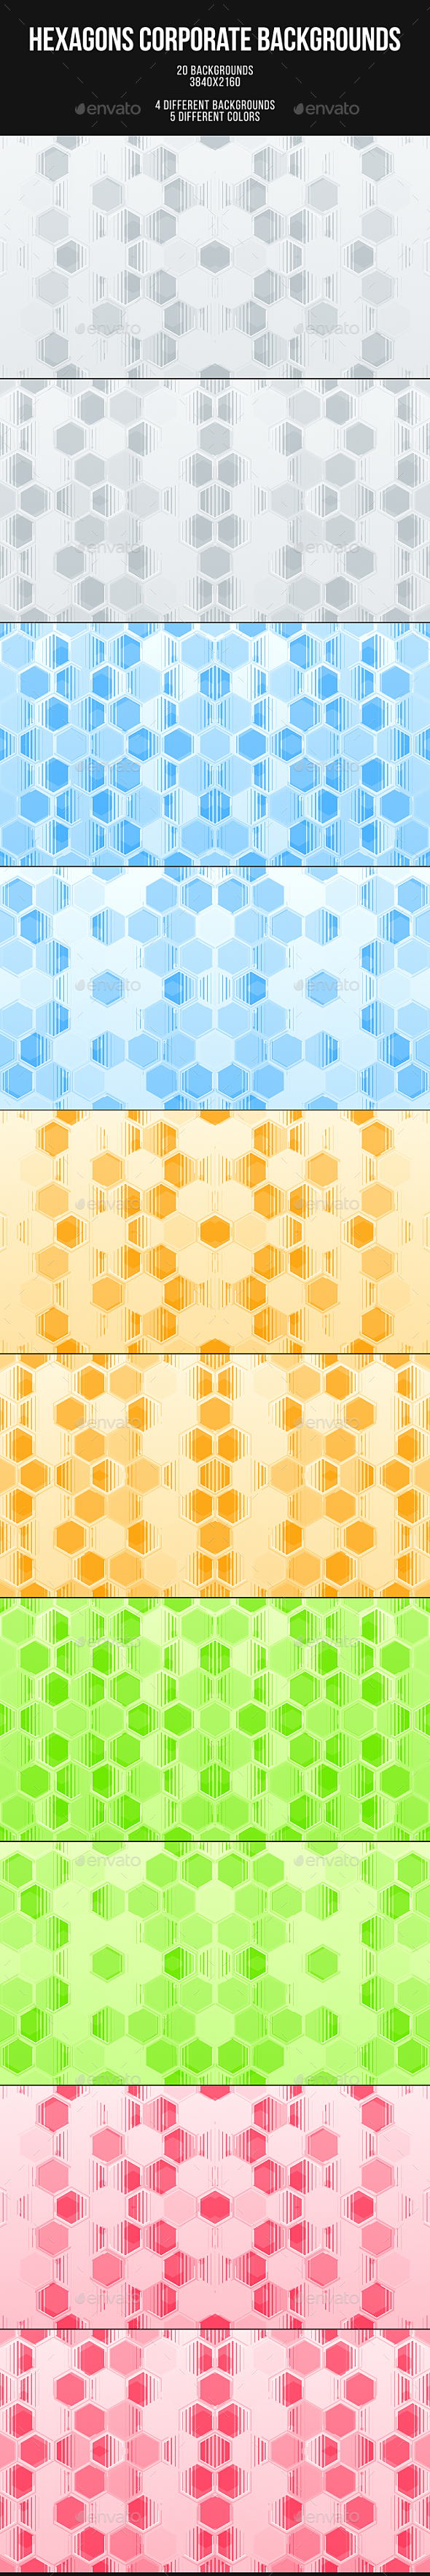 Hexagons Corporate Backgrounds - Abstract Backgrounds